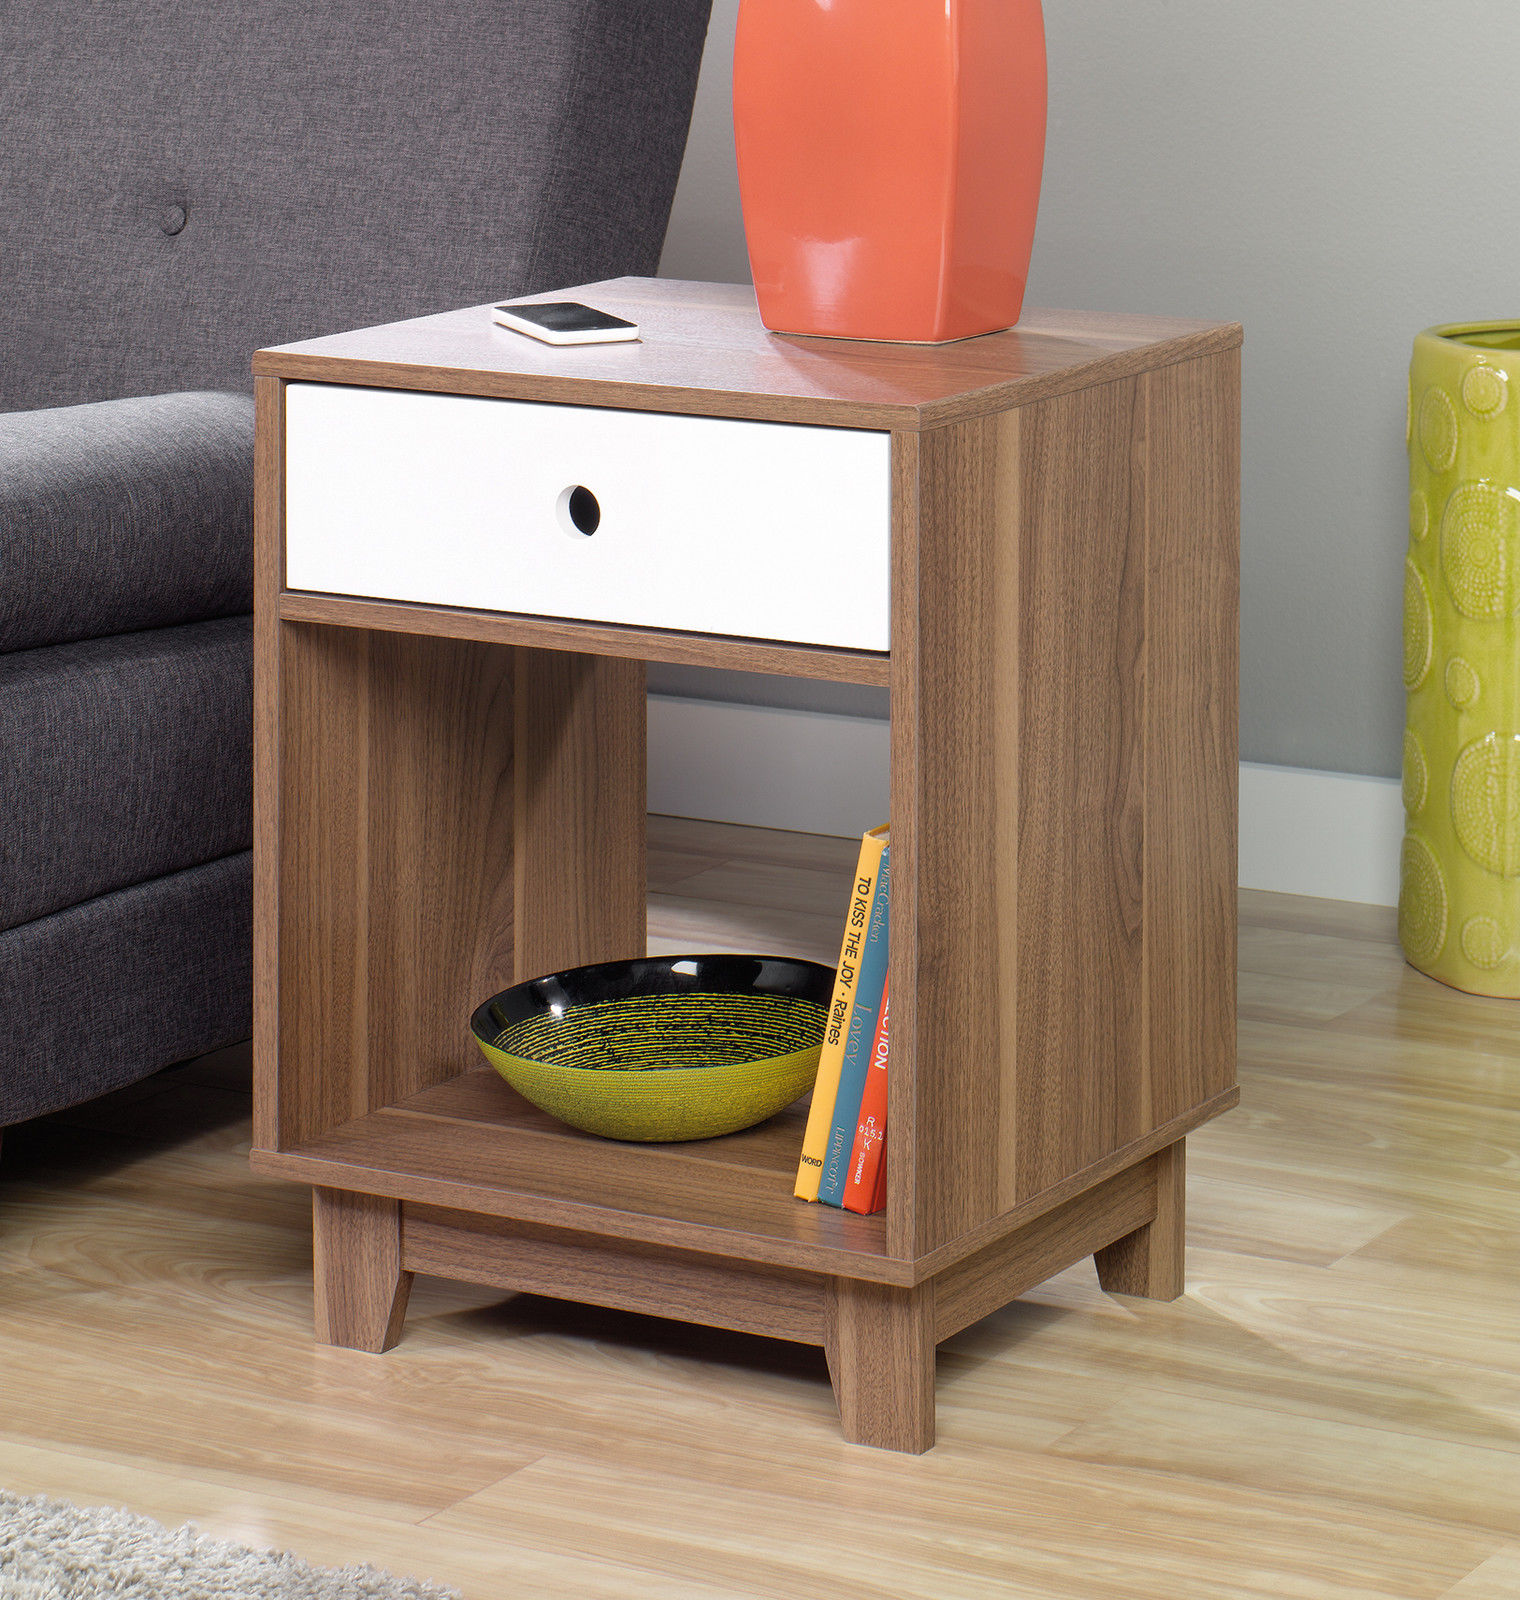 Best 2 Inspired Accents Decorative Walnut Side End Tables Pair This Month